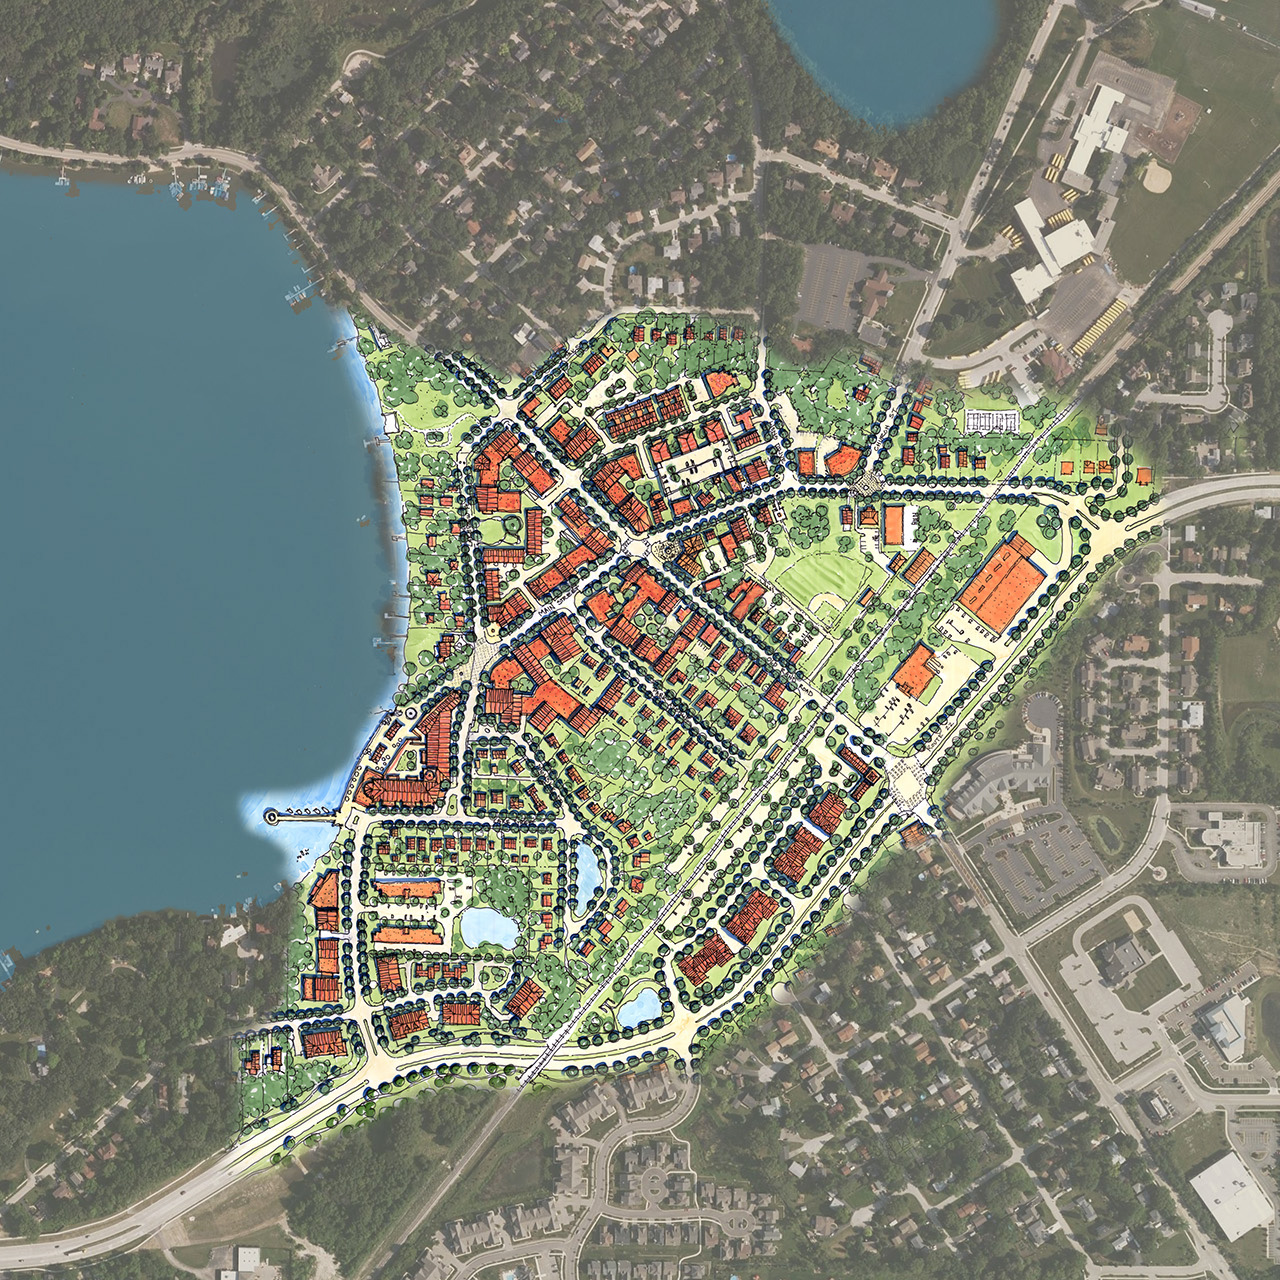 Downtown Lake Zurich Master Plan